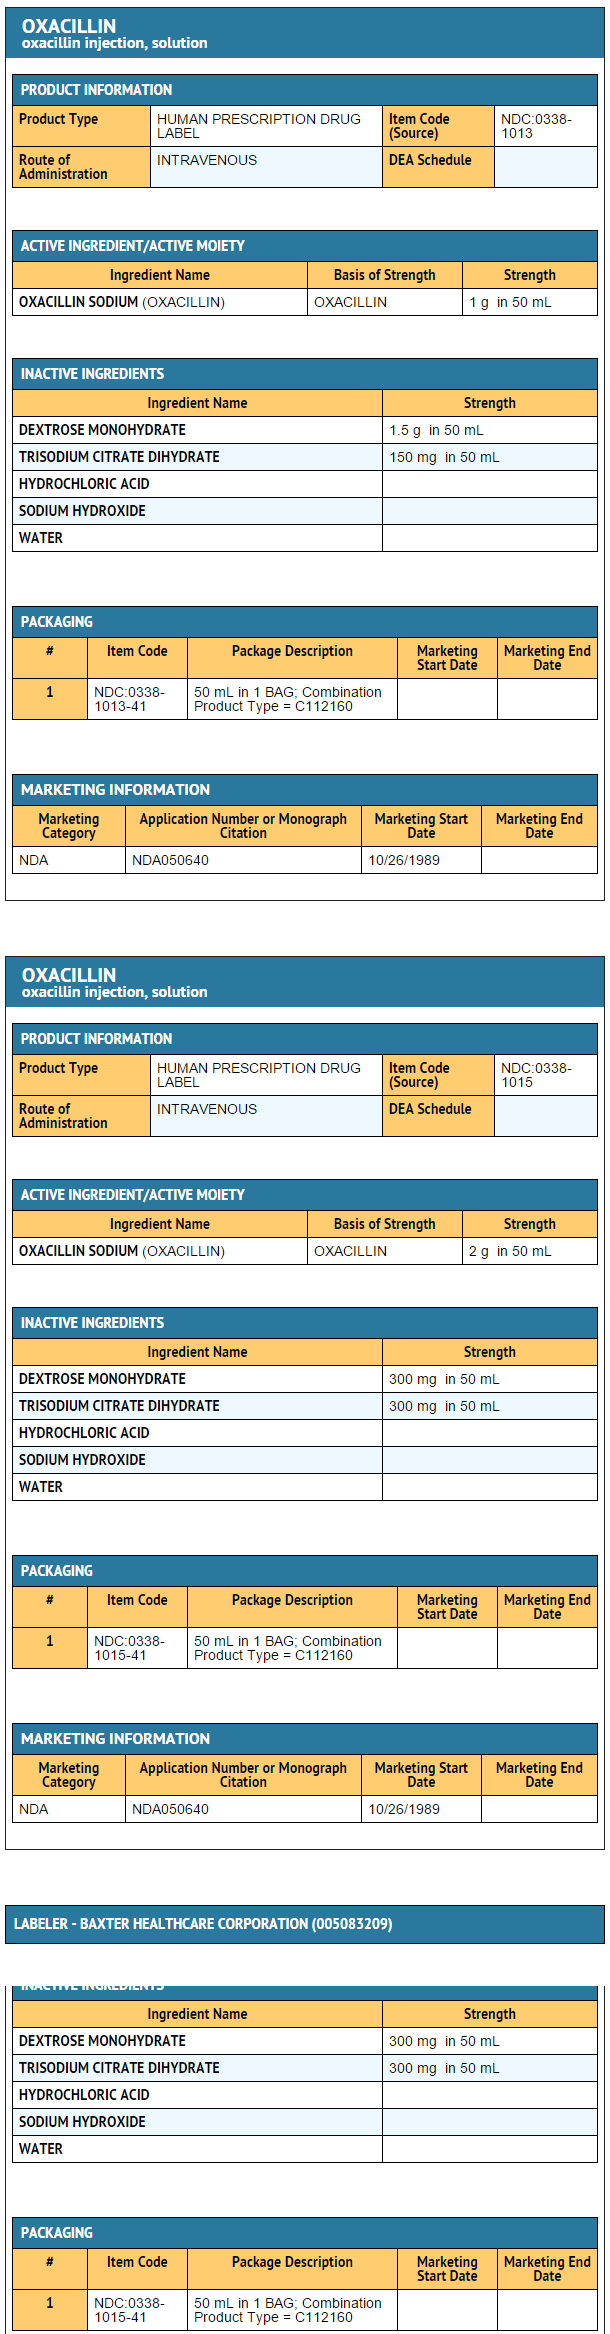 DailyMed - OXACILLIN- oxacillin sodium injection, solution .png